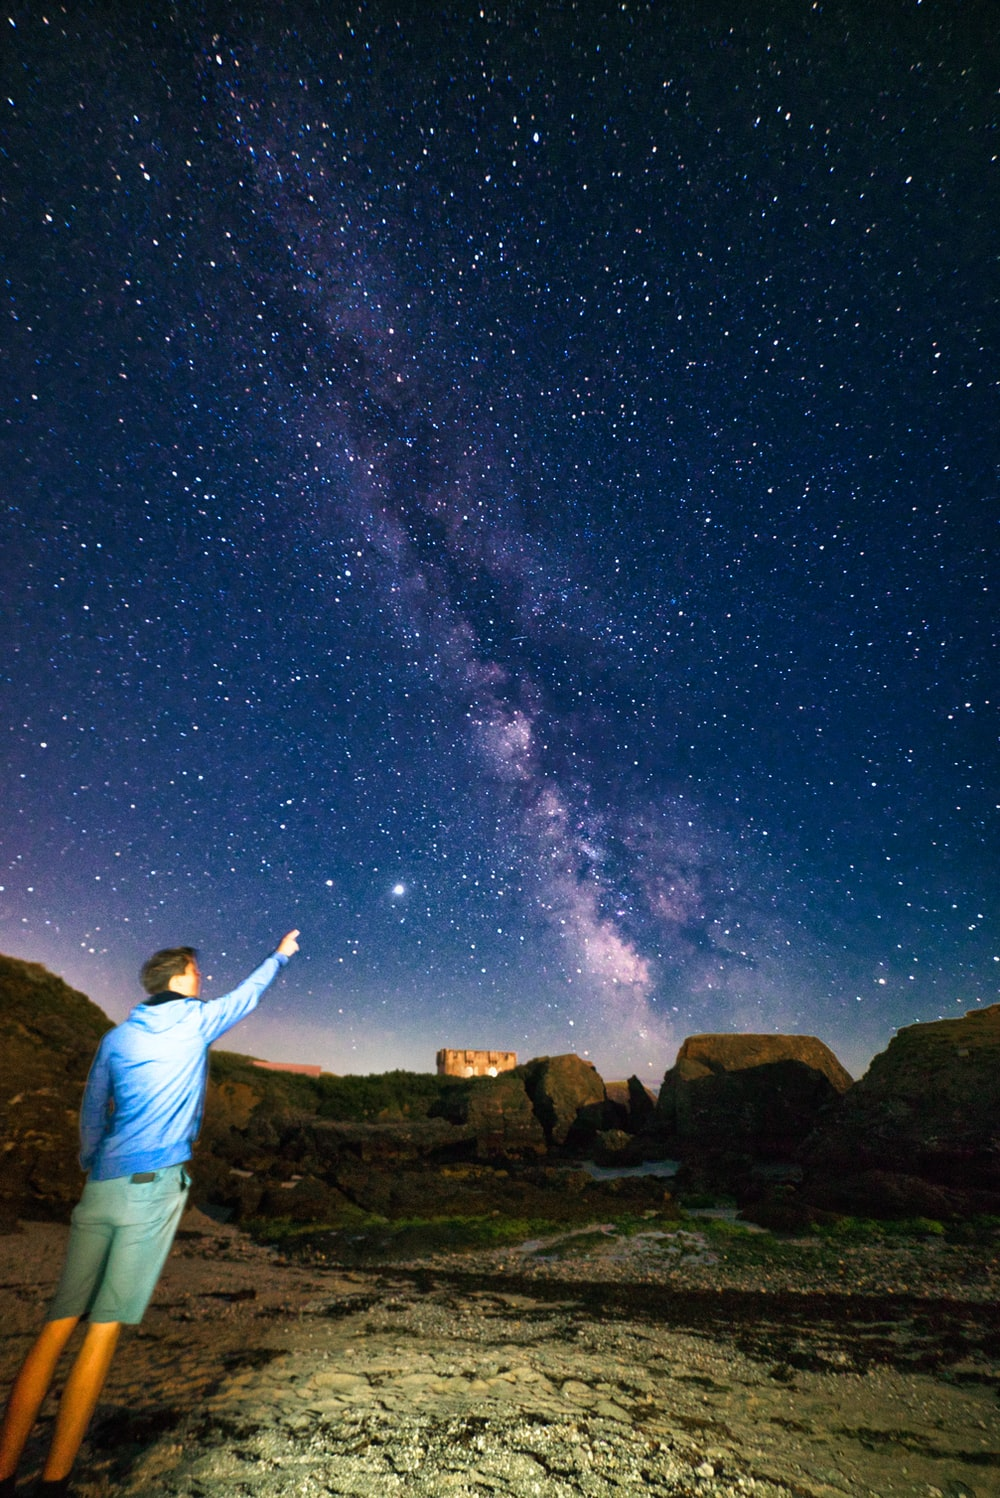 man in white dress shirt standing on brown rock under starry night